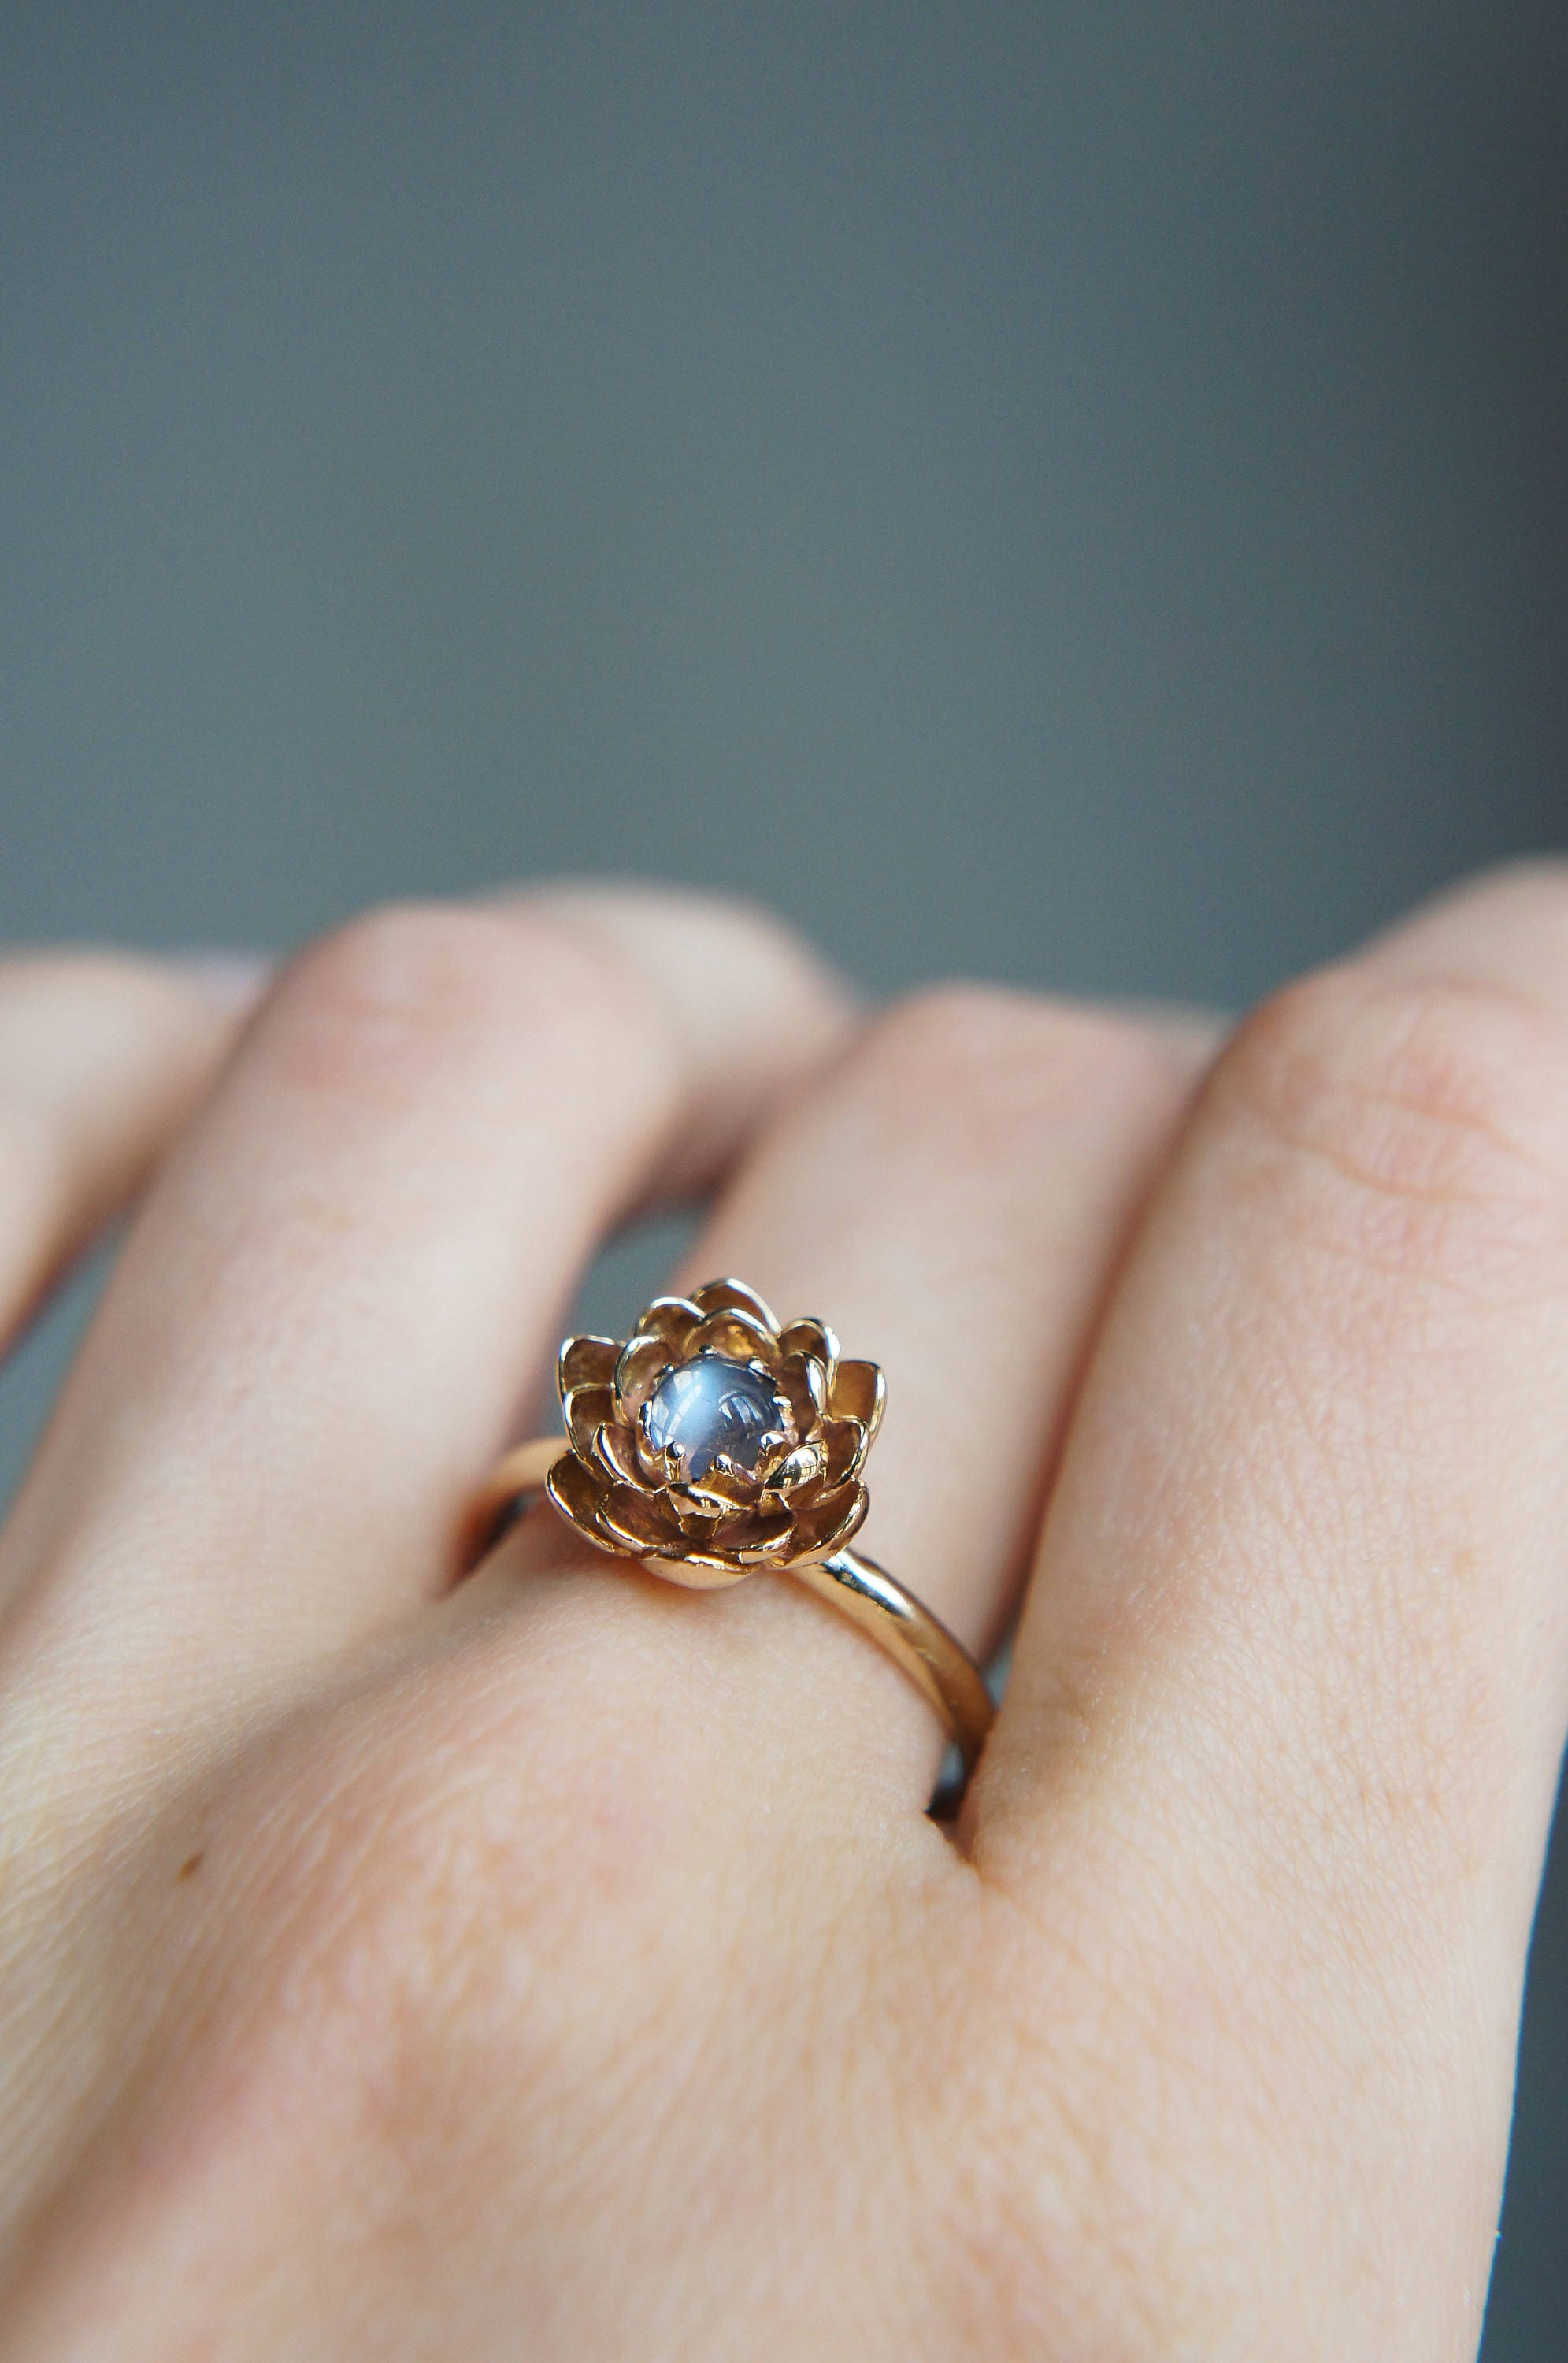 Image result for proposal ring